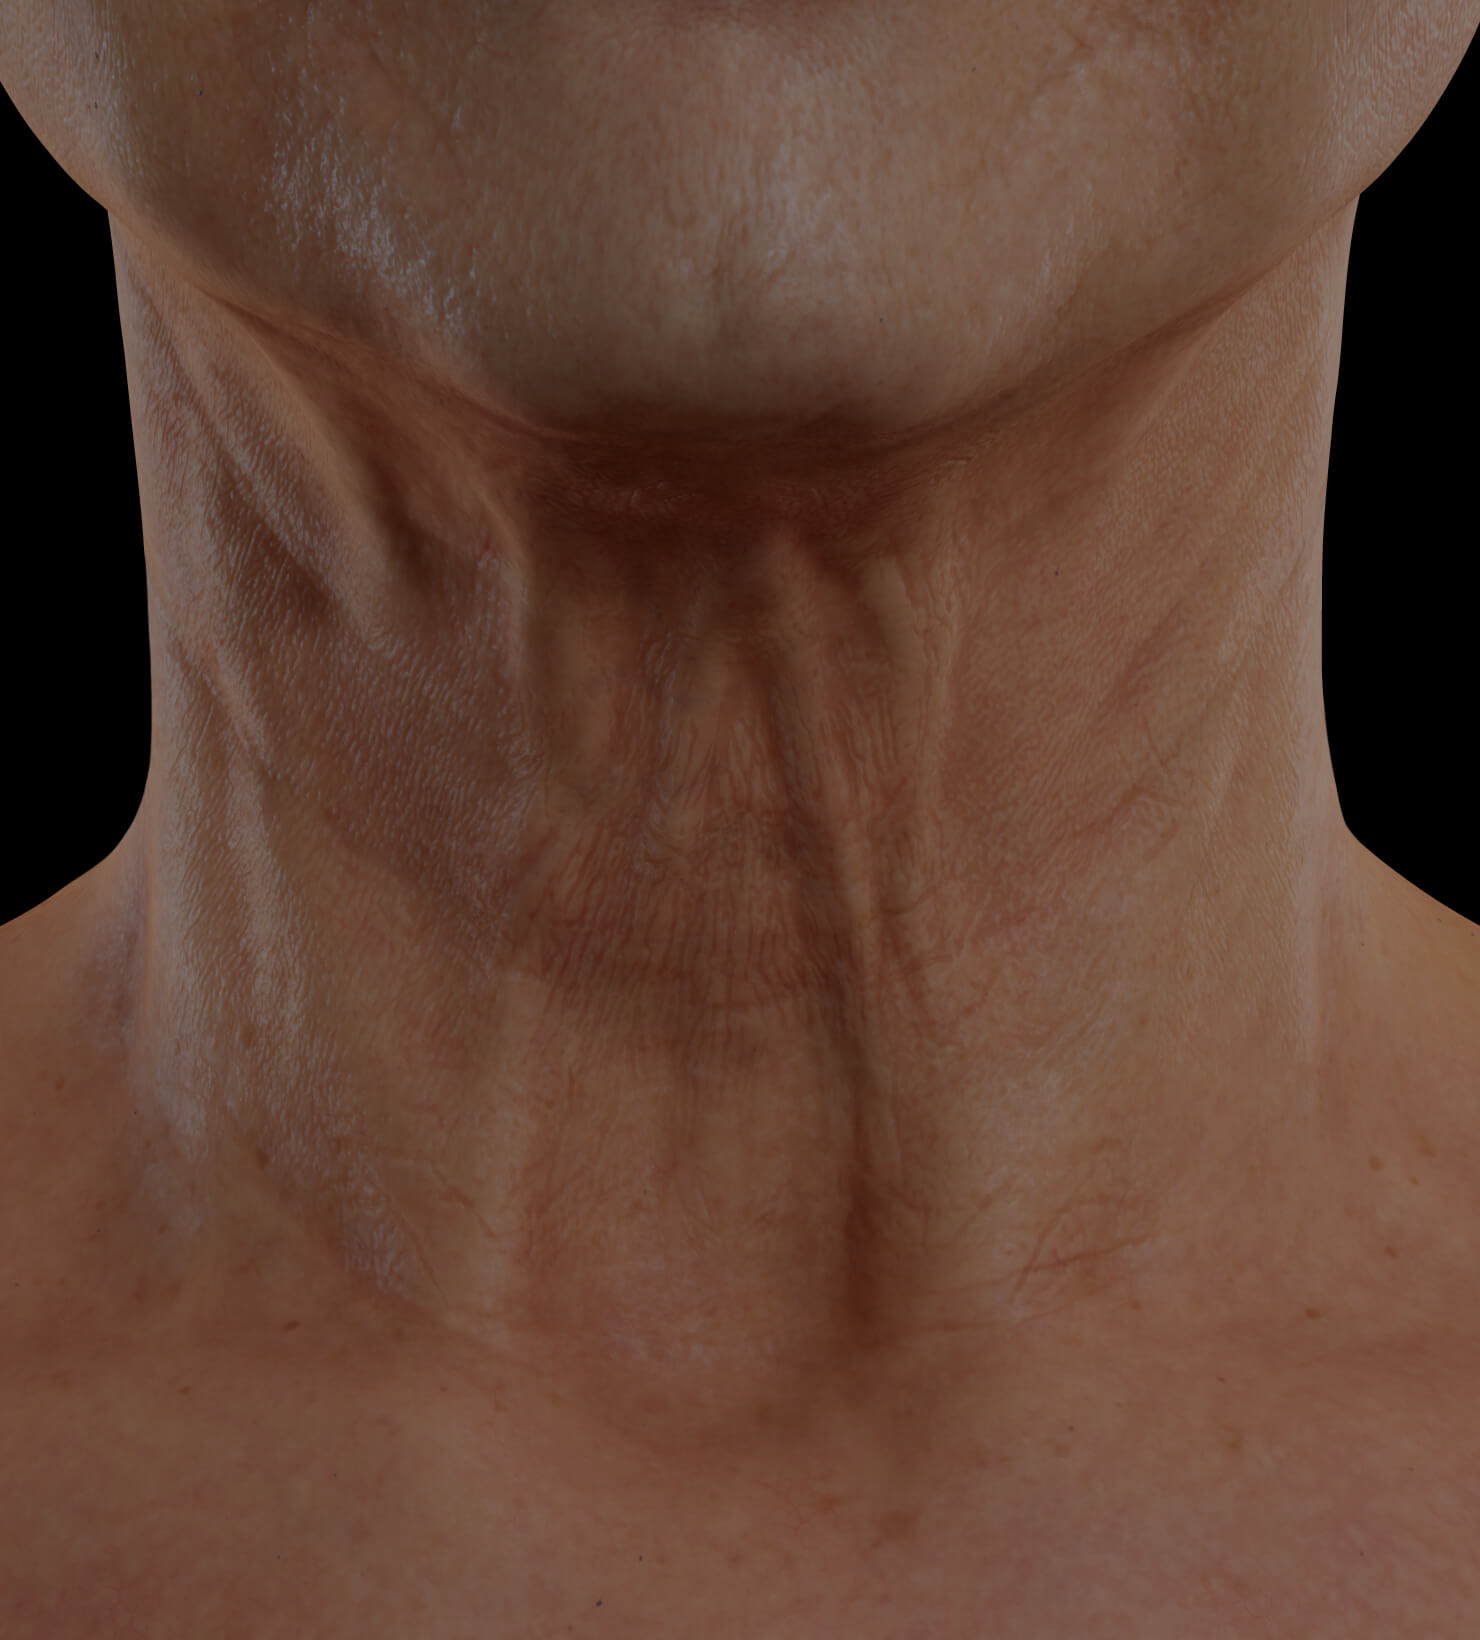 Clinique Chloé female patient with neck skin laxity treated with Venus Viva for neck skin tightening